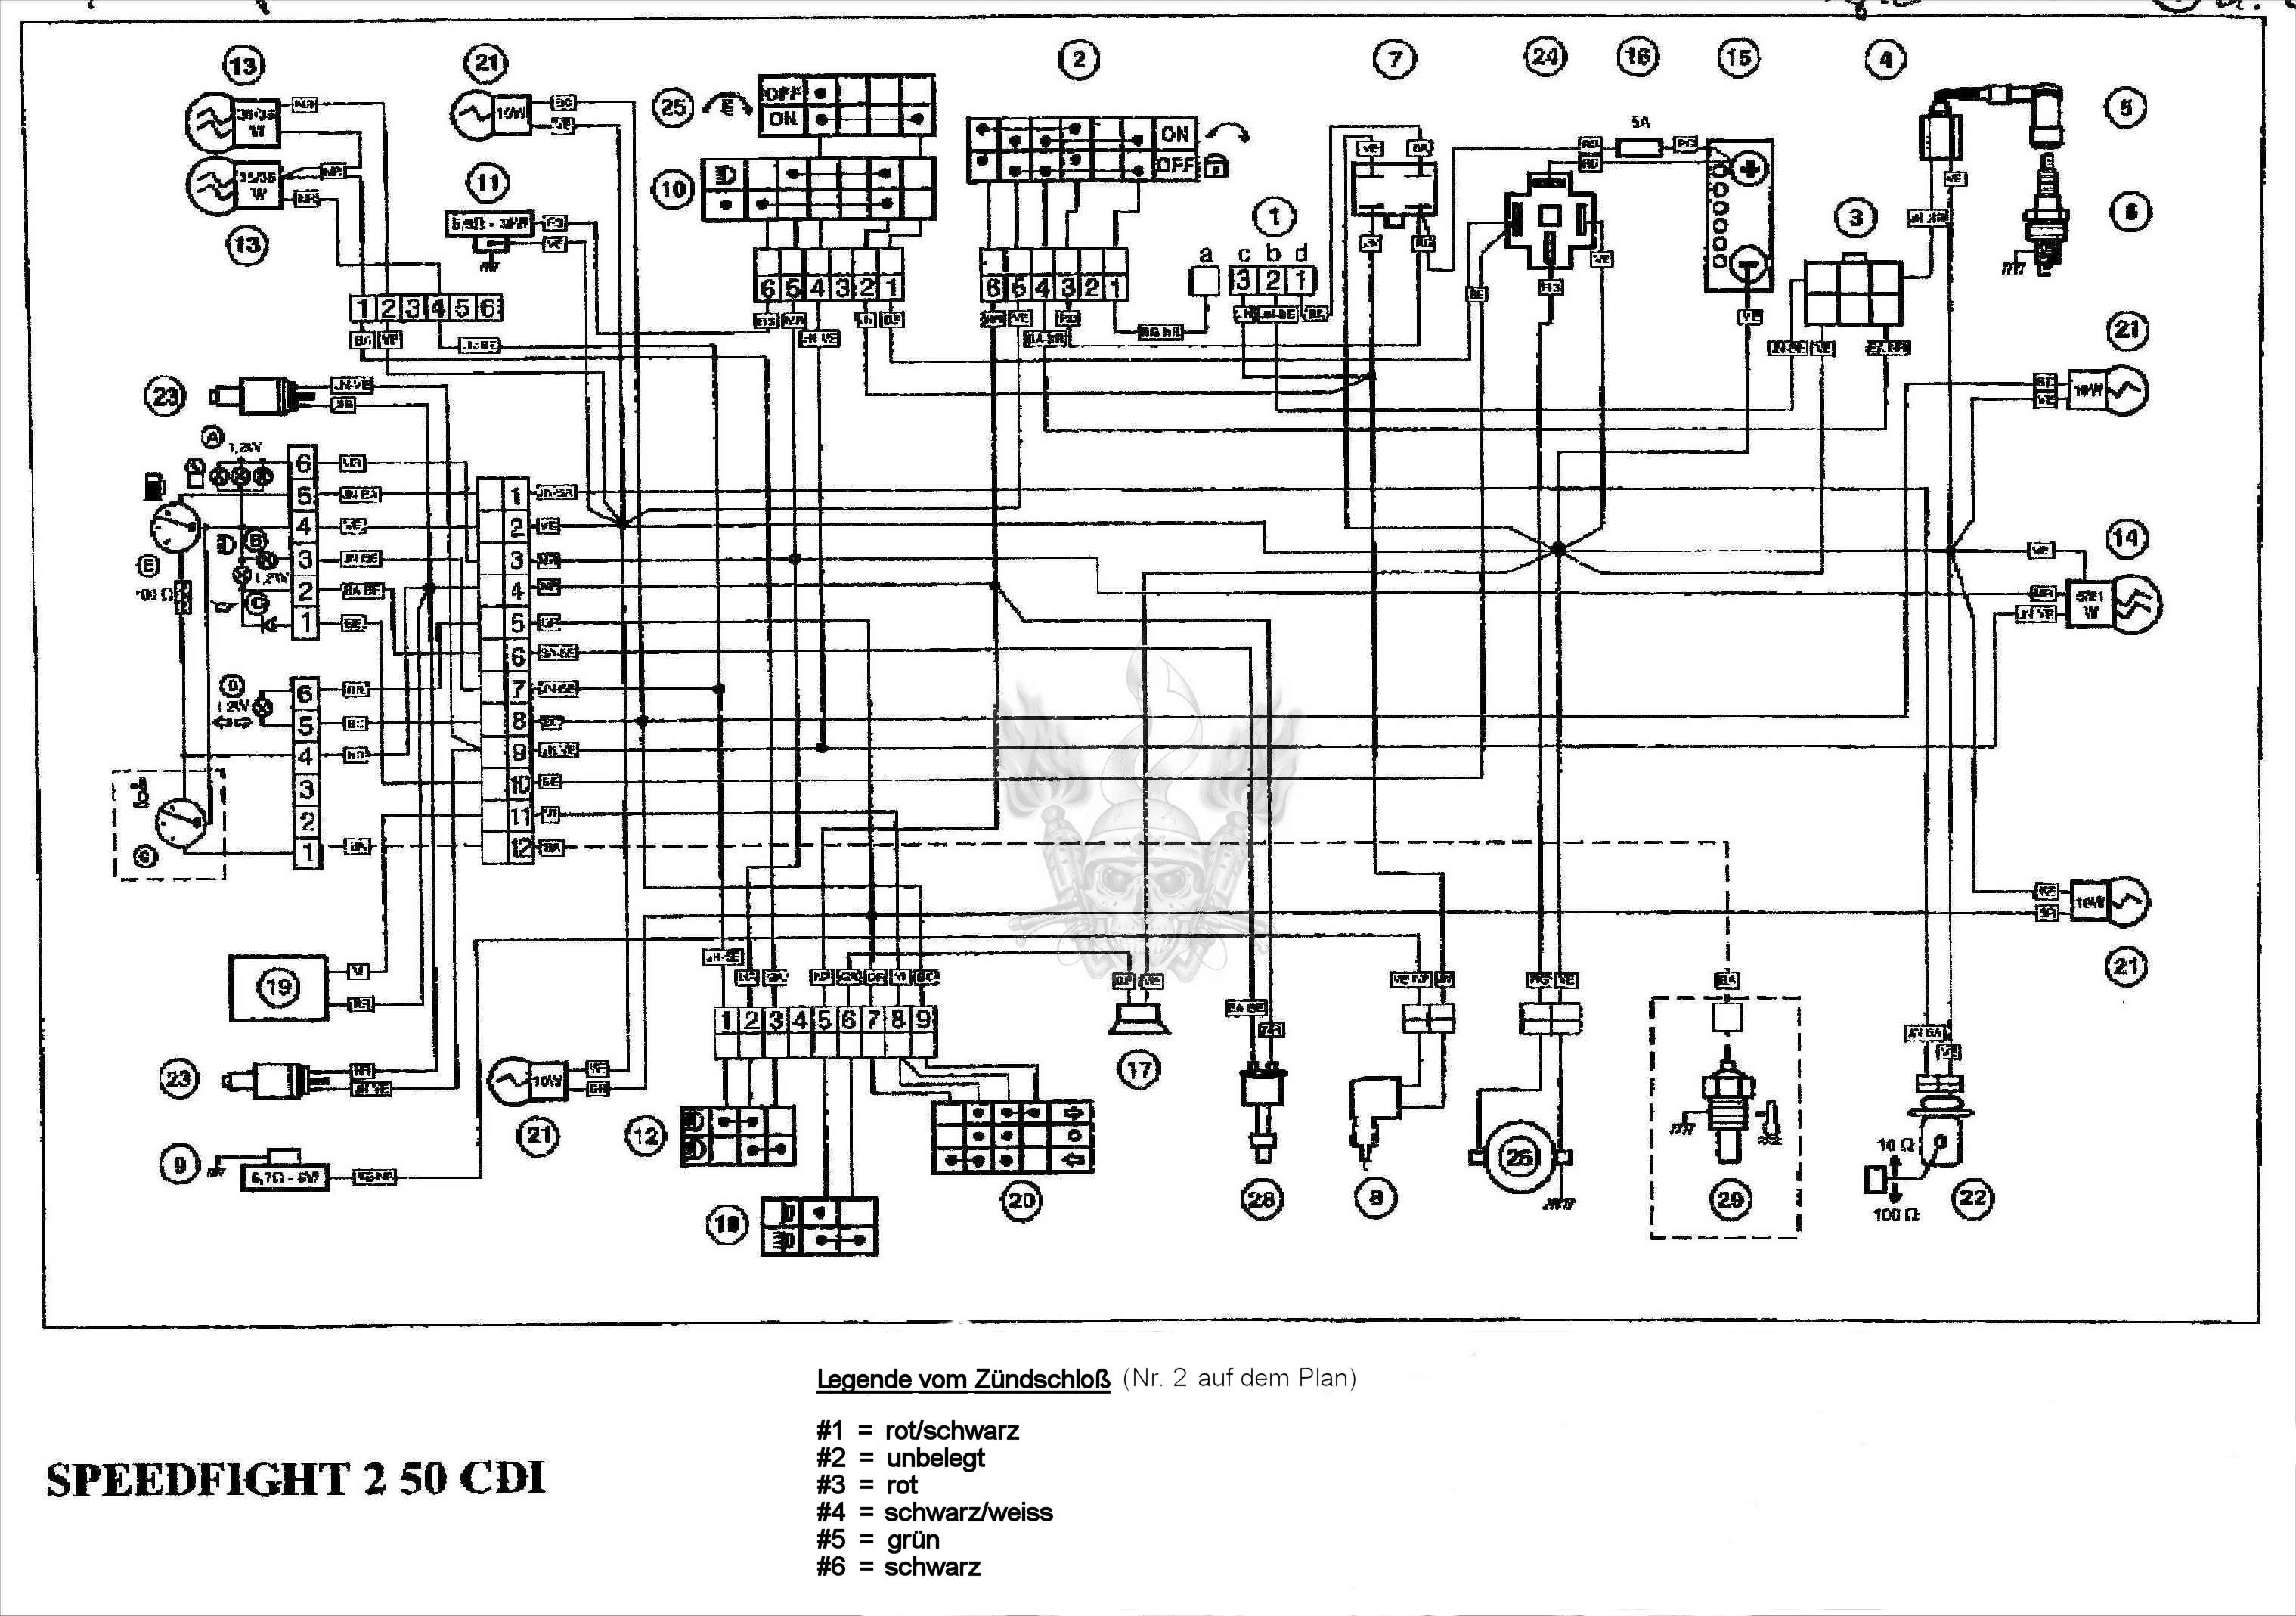 2000 Lincoln Navigator Fuse Box Diagram in addition 14 additionally Harbor Freight Predator Engine Wiring Diagram likewise P0069 also Viewtopic. on suzuki wiring diagram